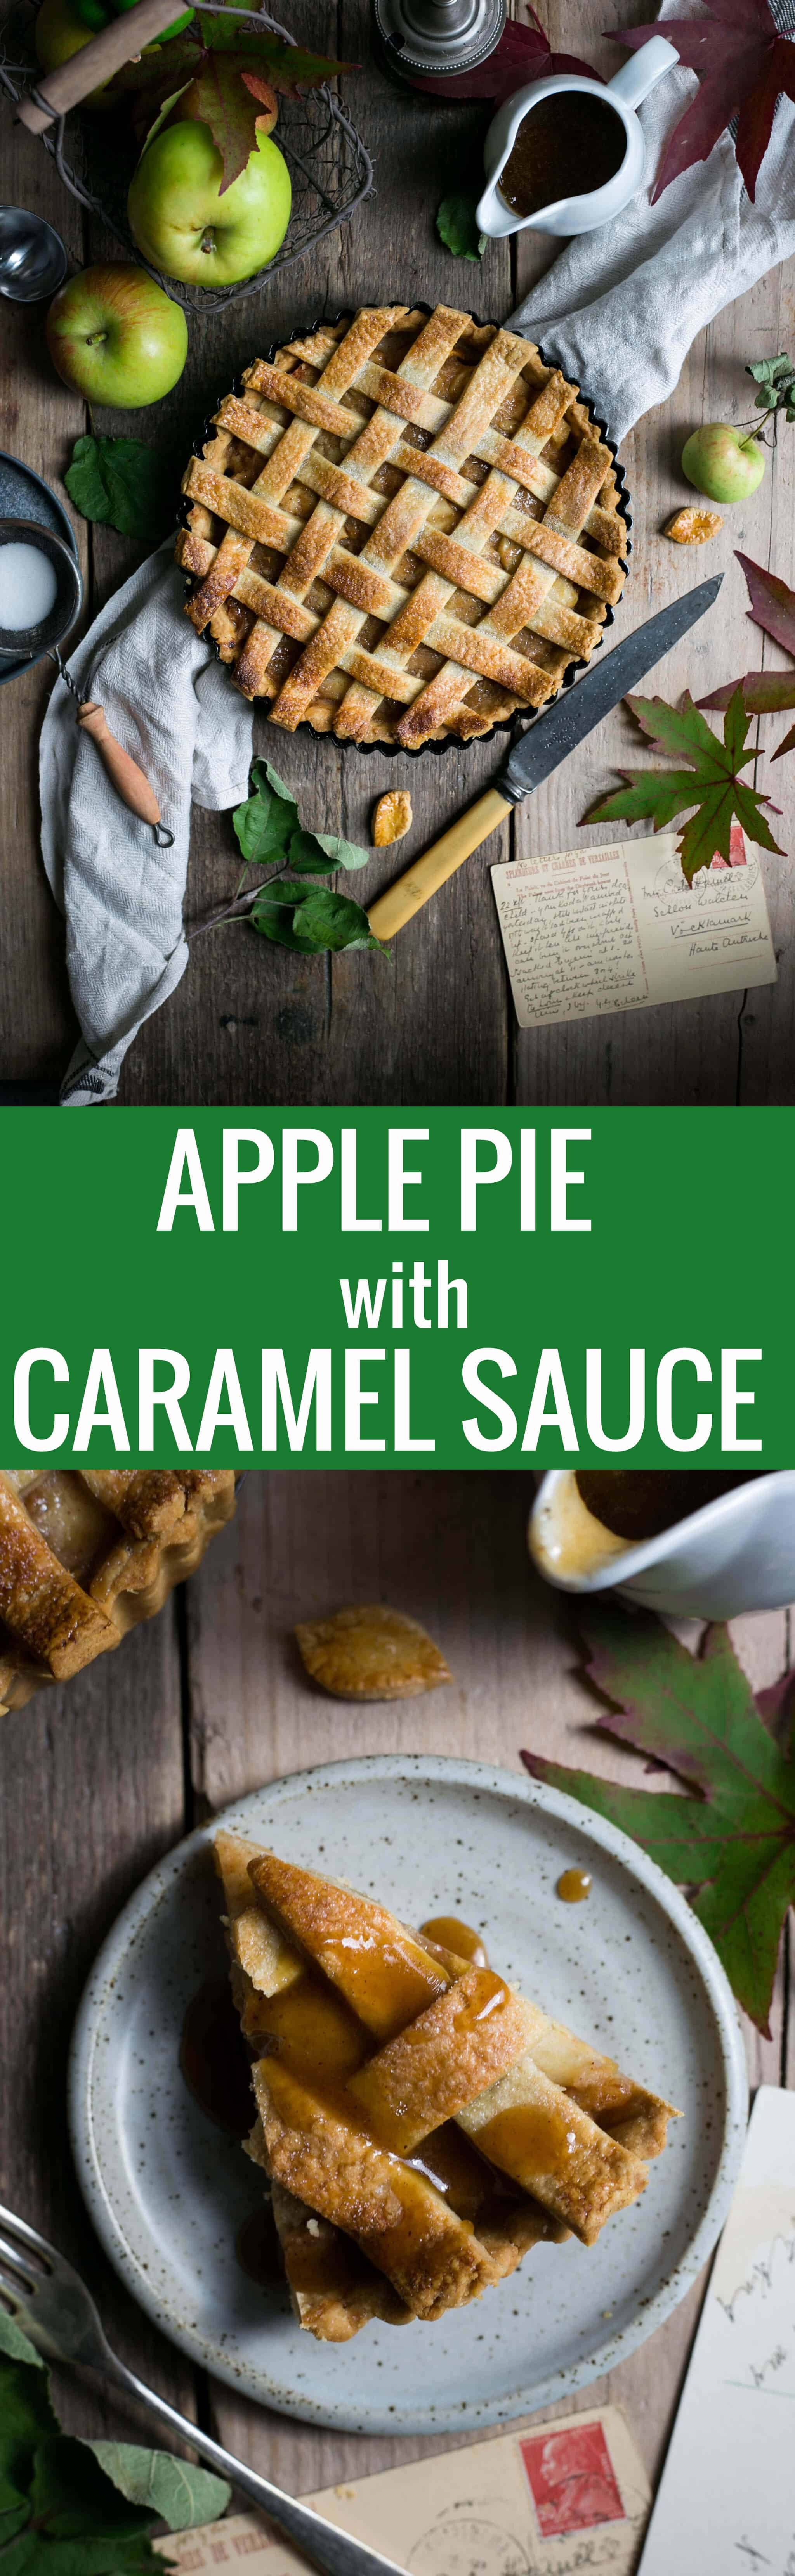 Traditional apple pie recipe, served with delicious caramel sauce | via @annabanana.co